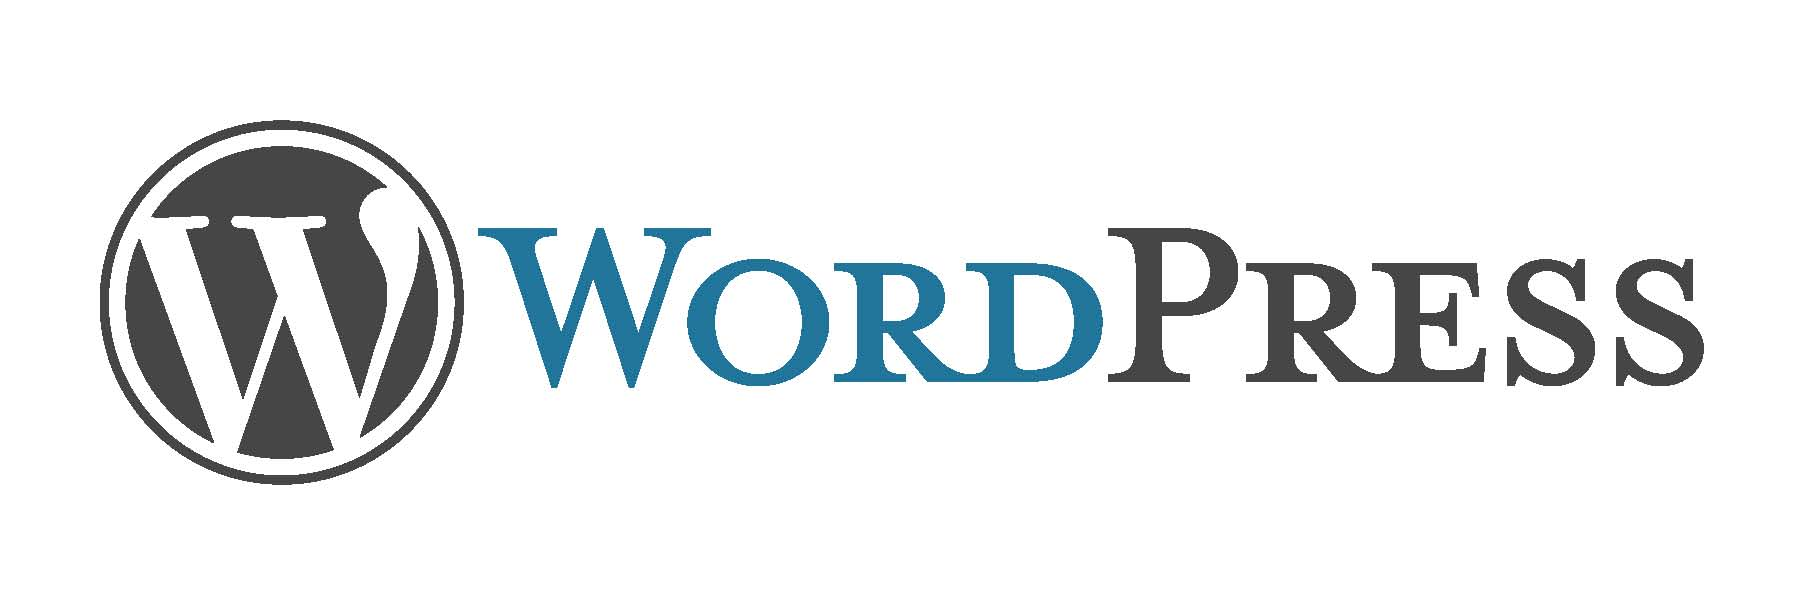 WordPress: HTTP Fehler beim Bilder Upload